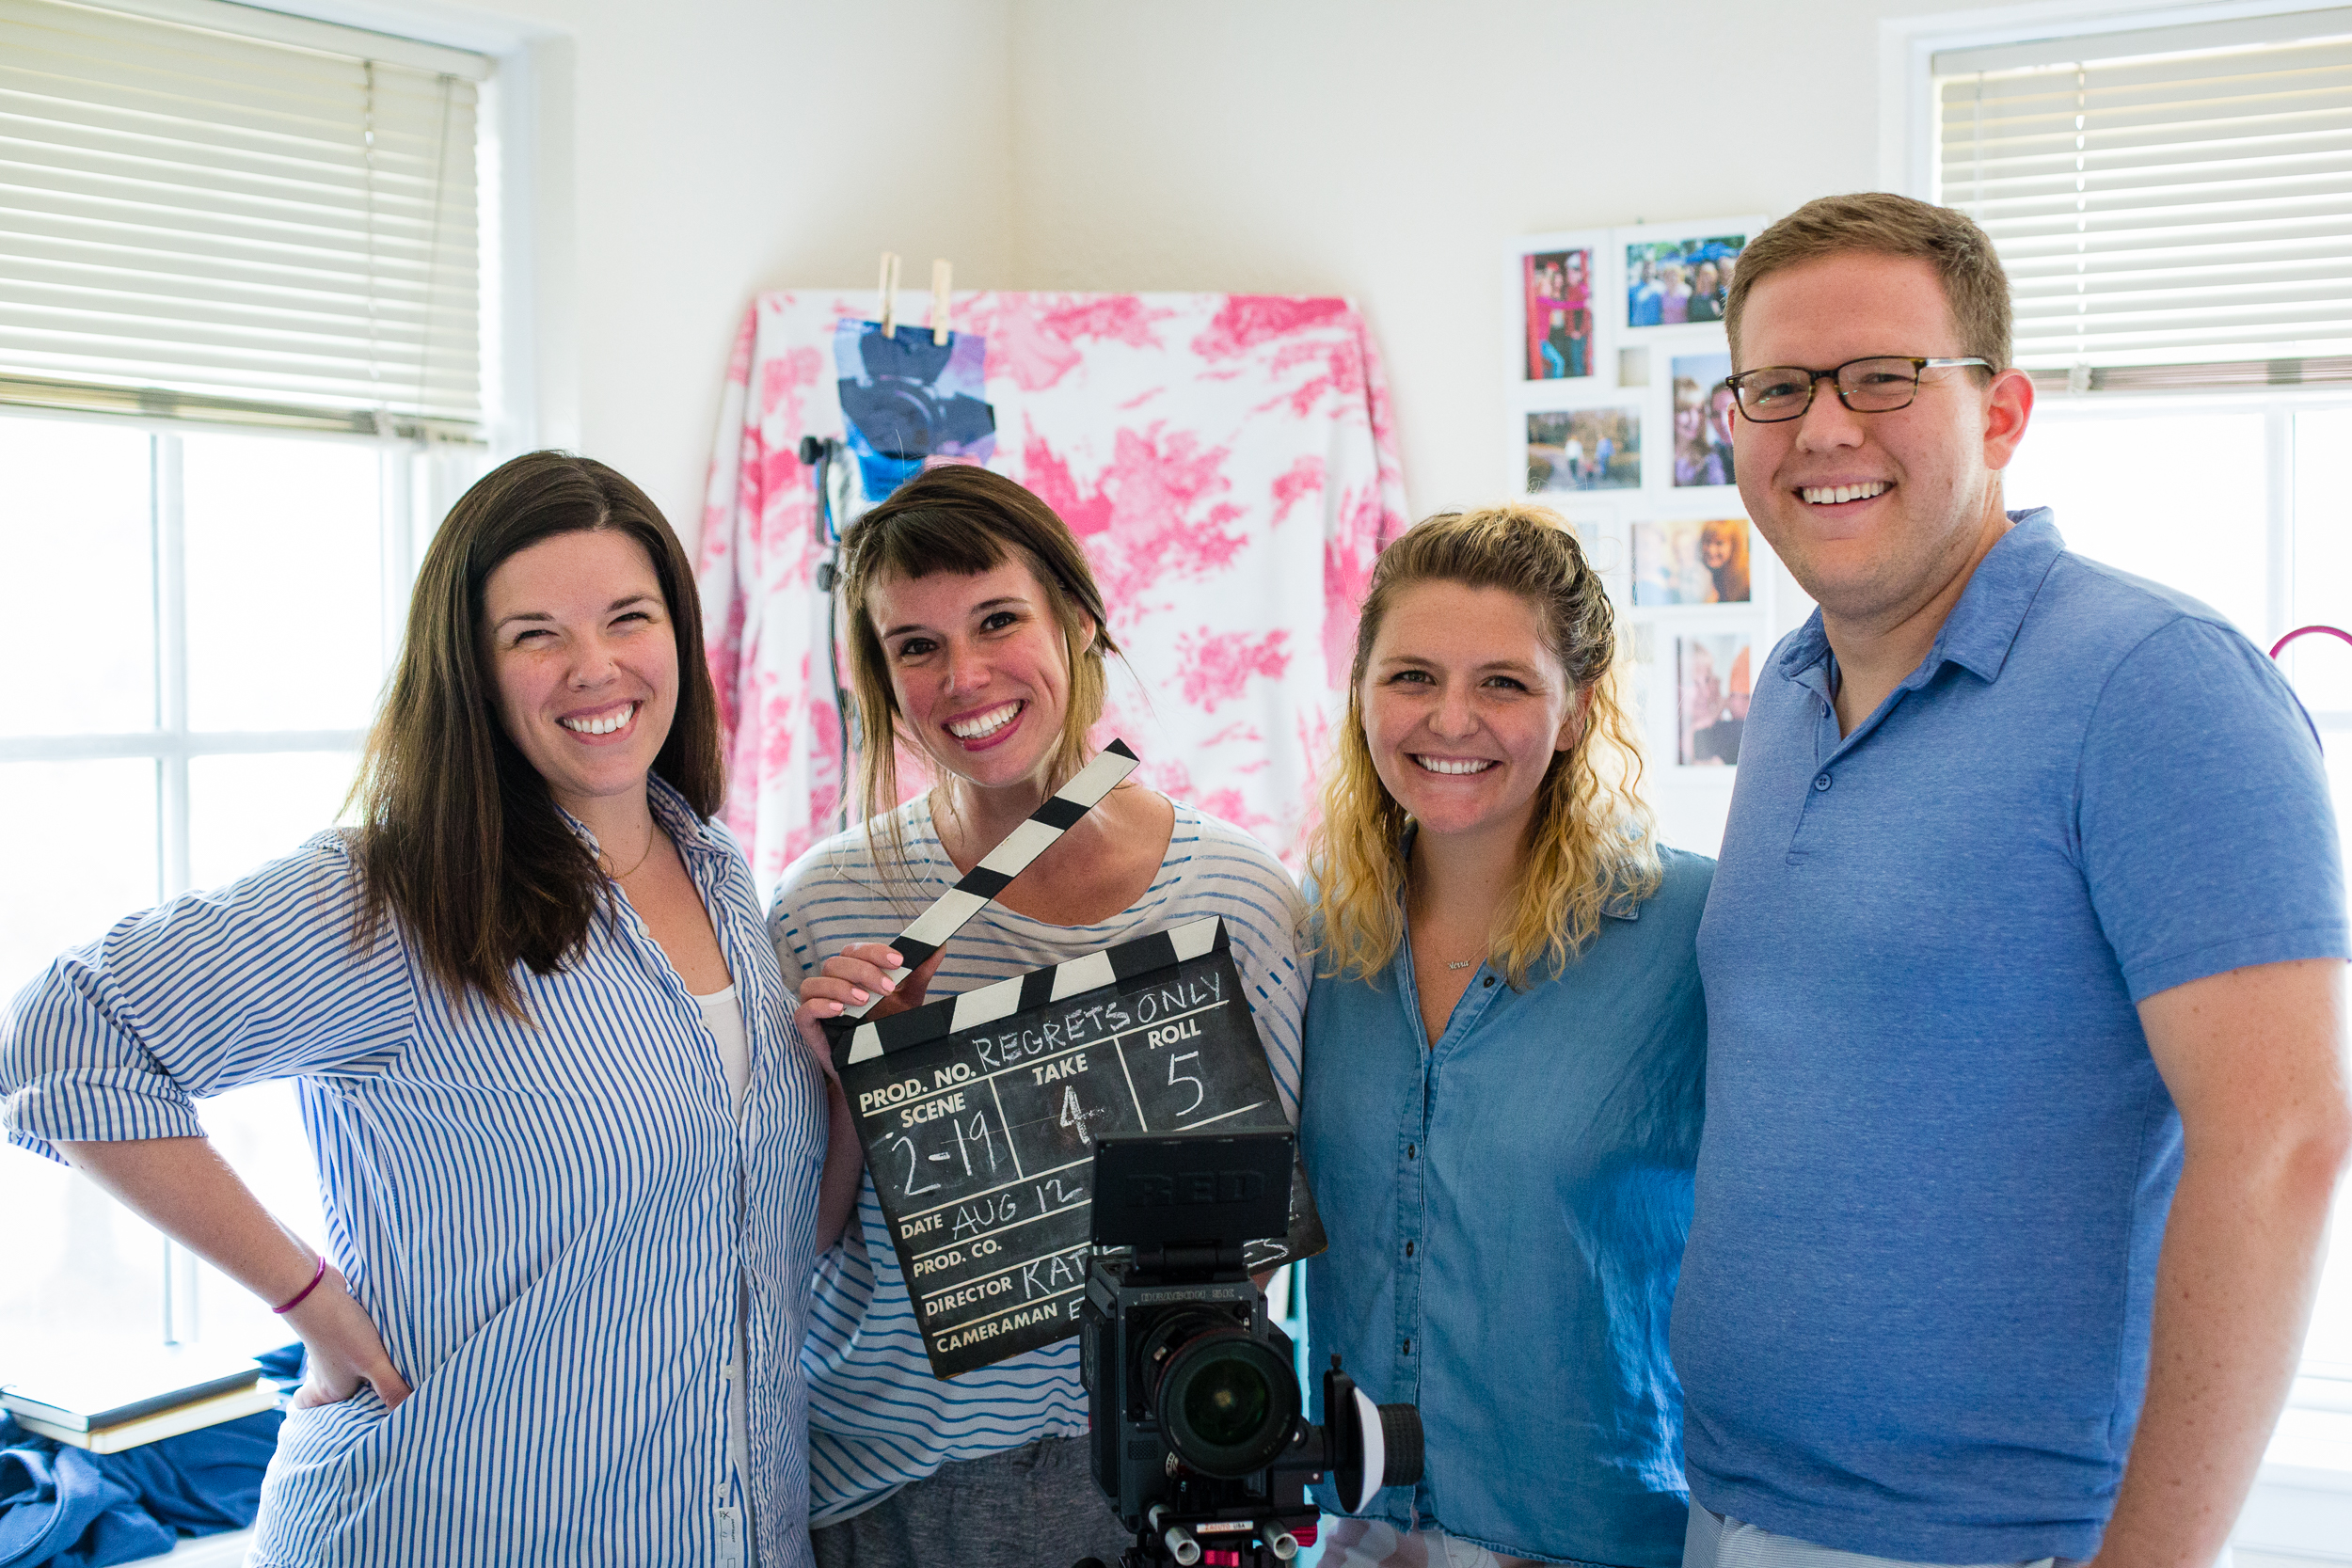 Day 4: Director/Editor Katie Stanley, Co-Creator/Writers Alice Stanley Jr. and Sierra Carter, and Producer Eric Dern.